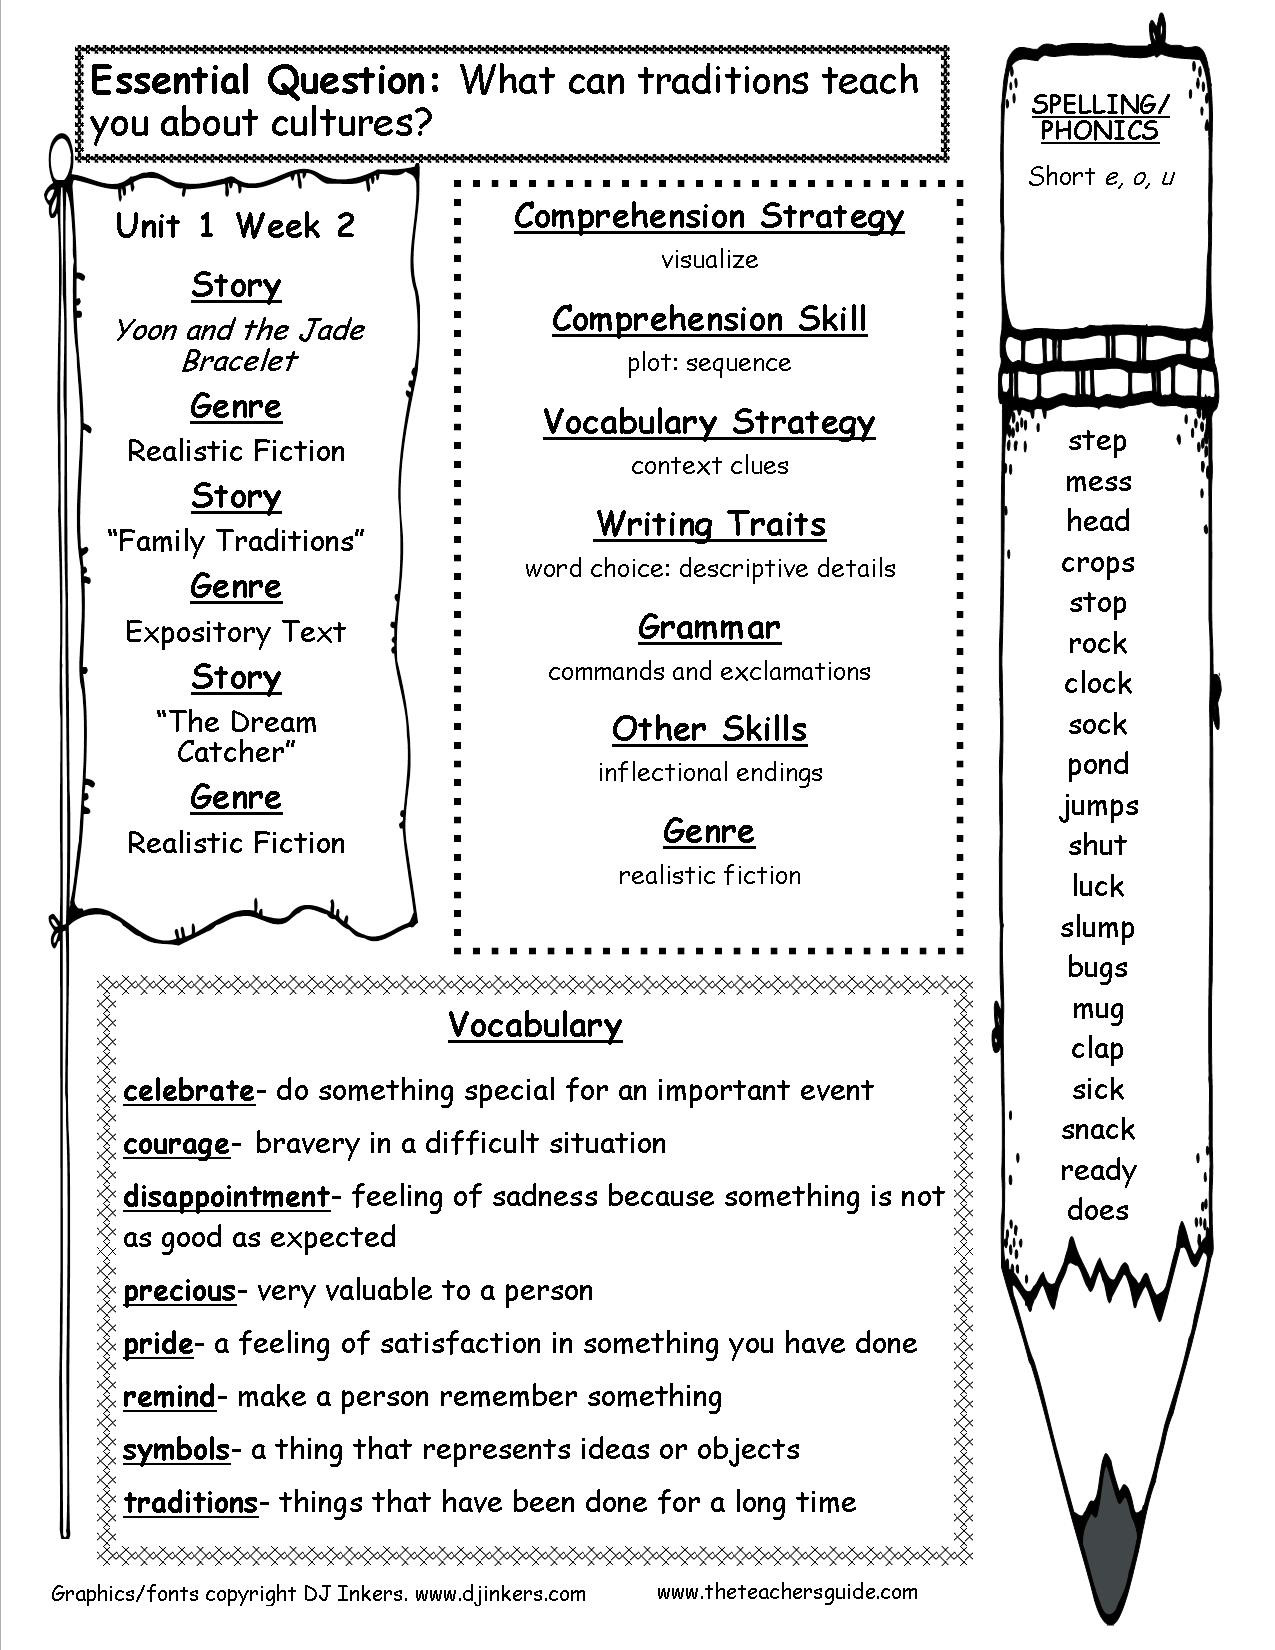 Reading Worksheets 5th Grade Mcgraw Wonders Third Grade Resources and Printouts 3rd